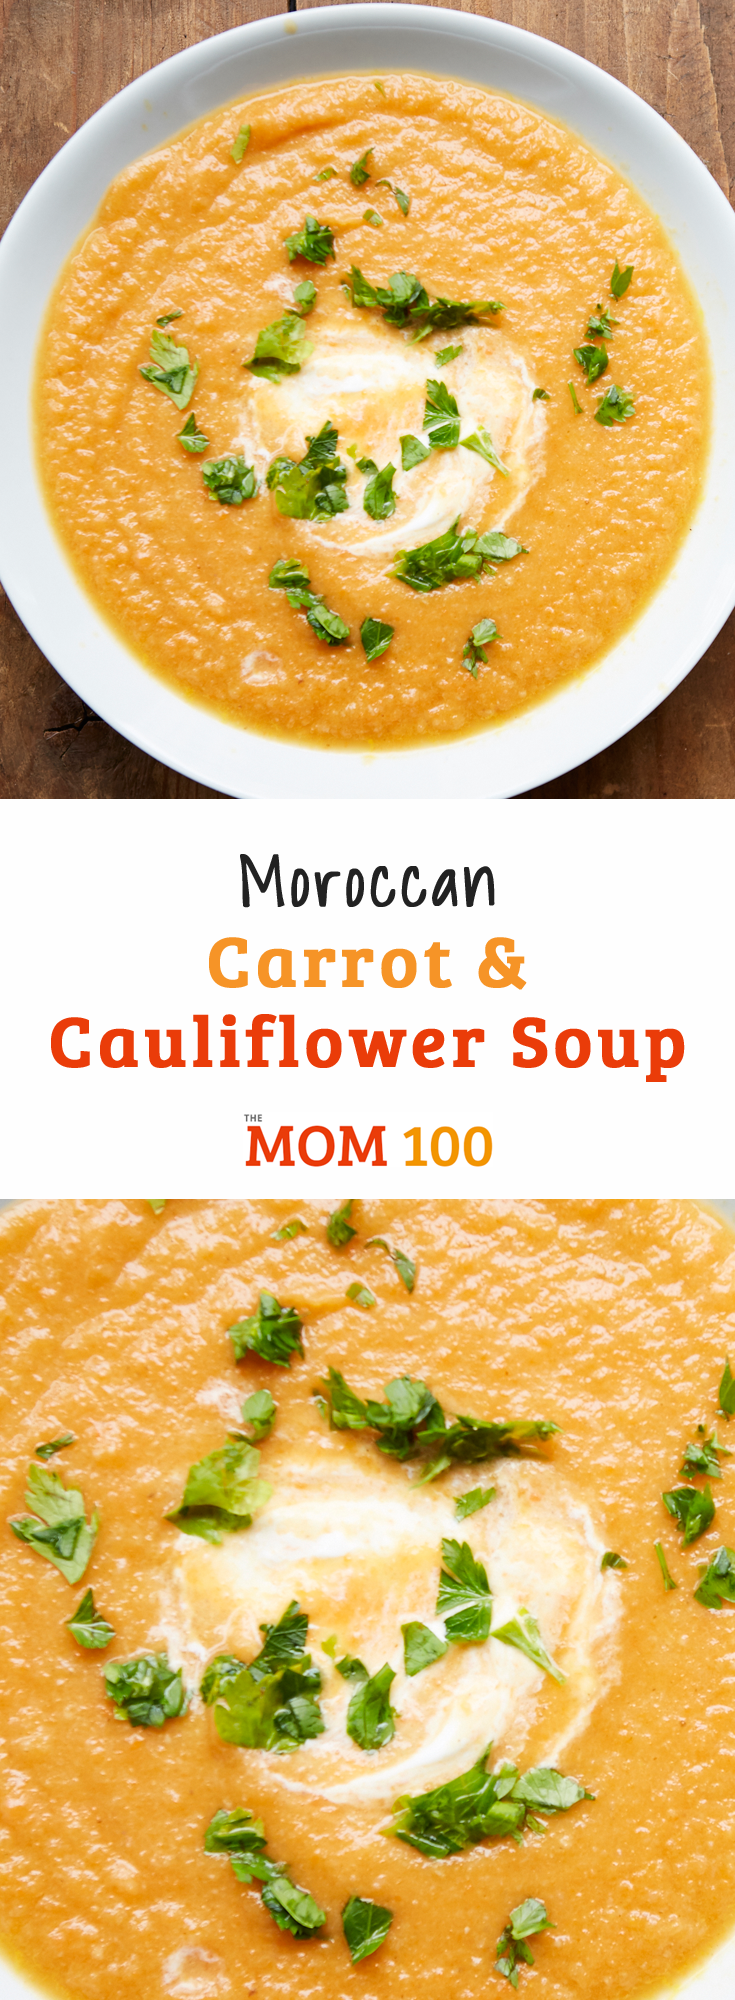 This Moroccan Carrot and Cauliflower Soup incorporates some the spices that most often appear in Moroccan cuisine. It can also be vegetarian or vegan.